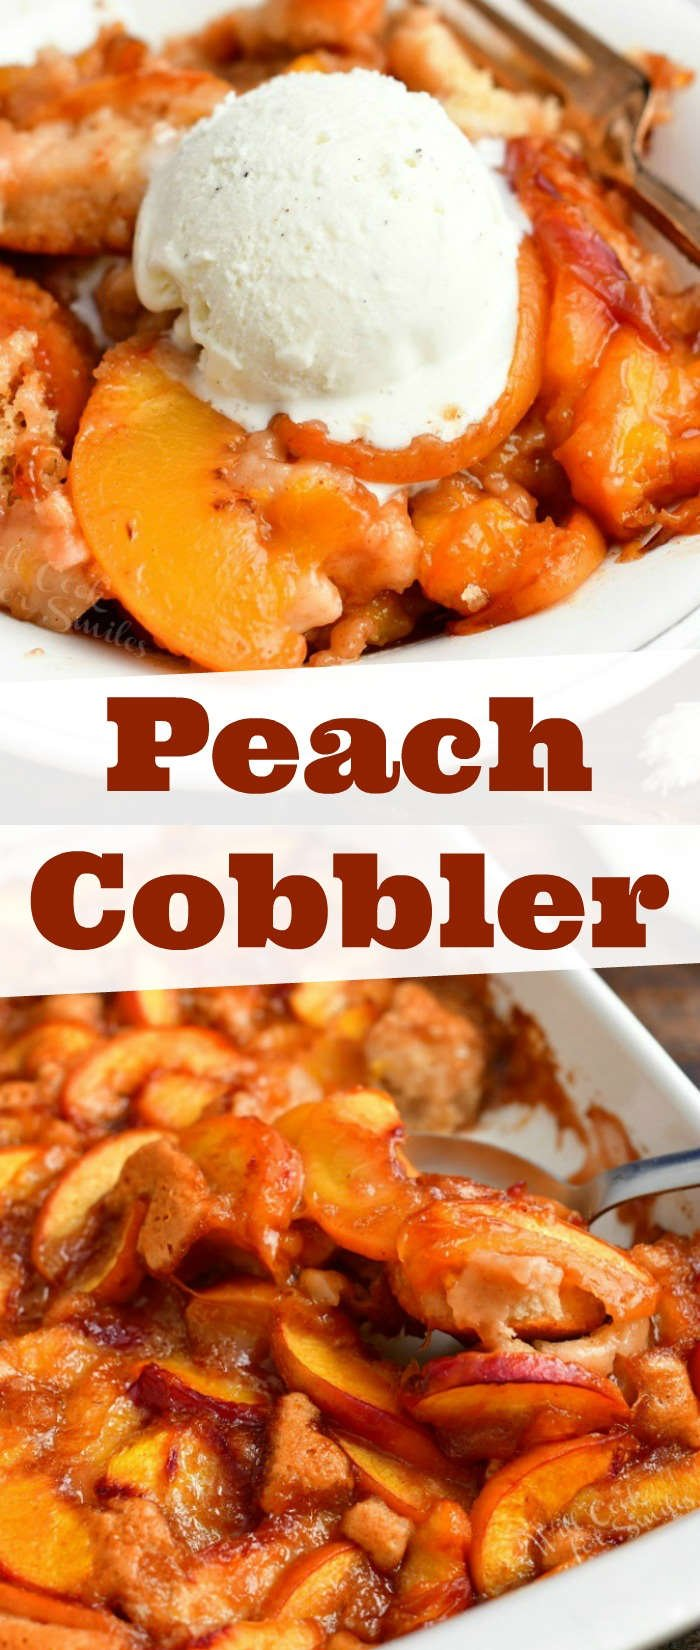 collage of two images: peach cobbler in a bowl with a scoop vanilla ice cream on top and scooping peach cobbler out of the baking pan on the bottom